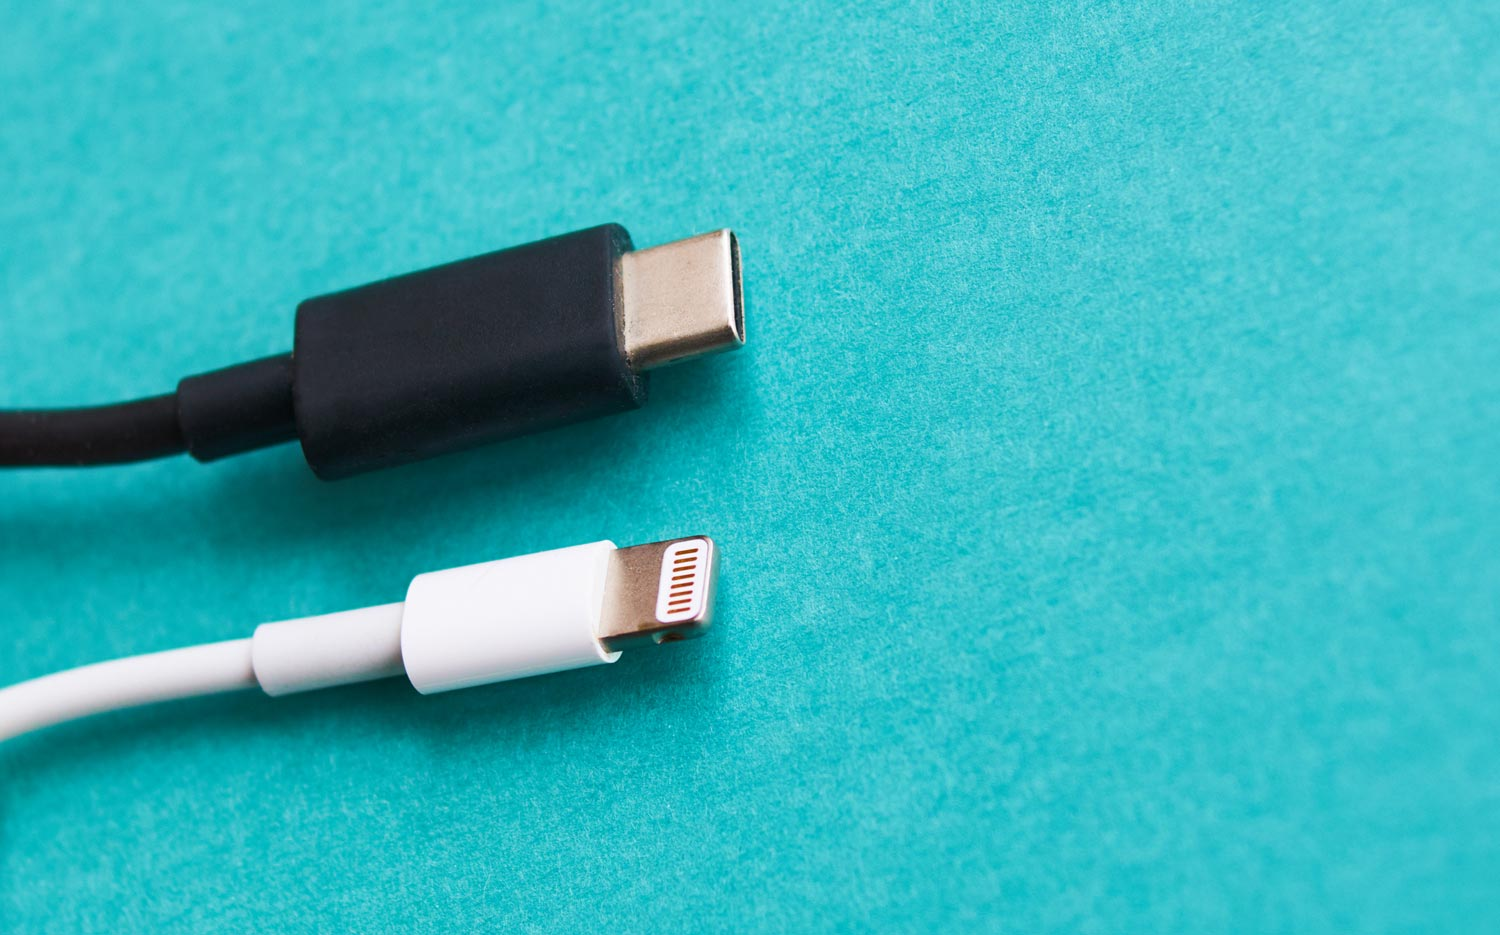 The Fate of Lightning: Will Apple Go All-In On USB-C